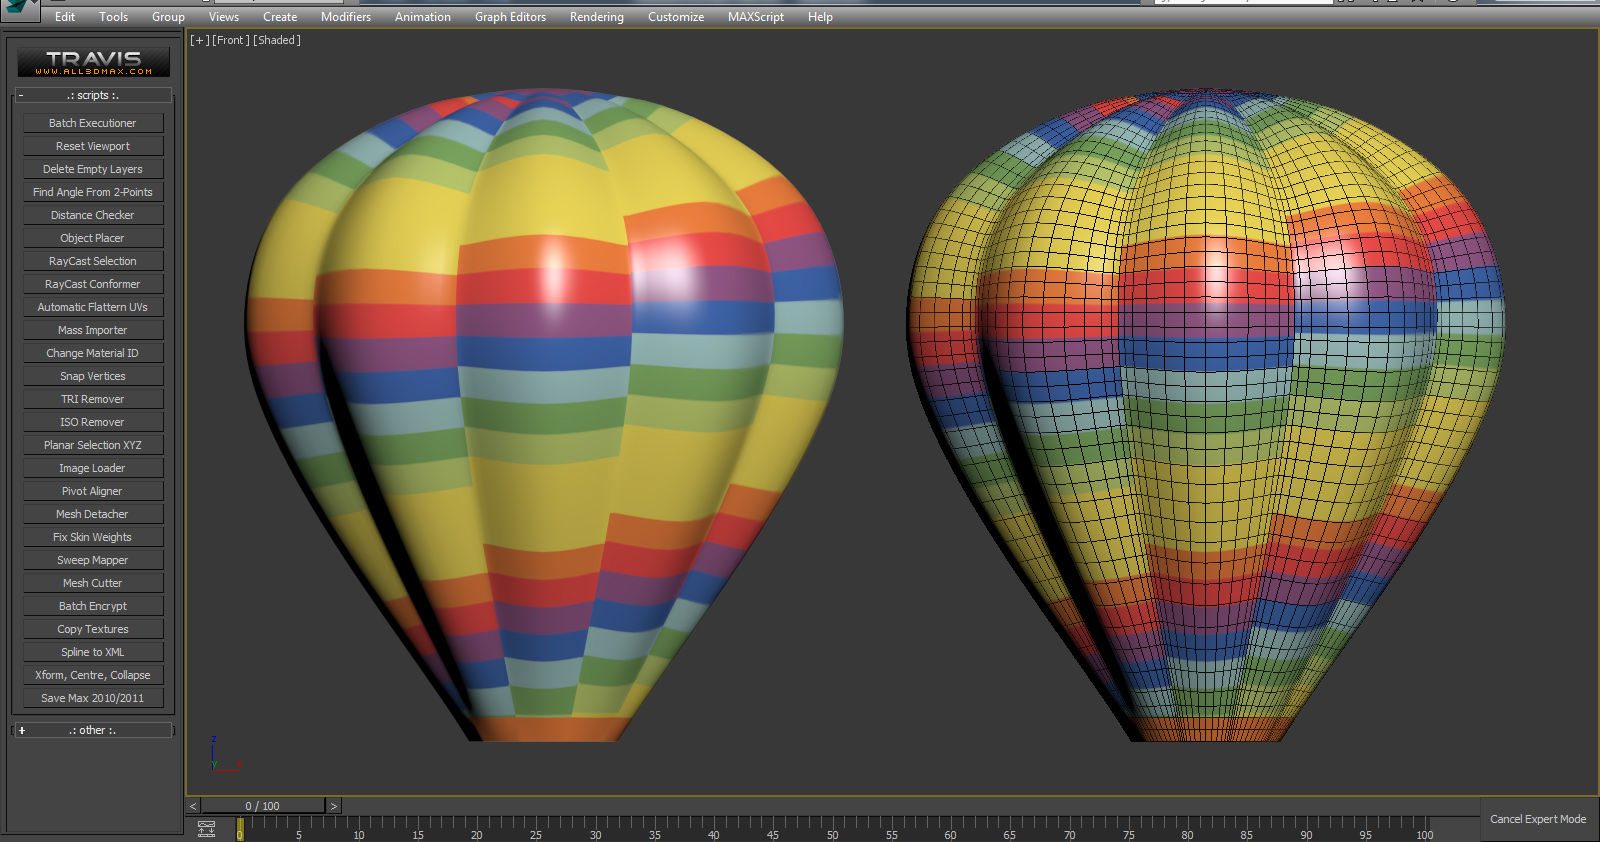 Help with hot air balloon autodesk community 3ds max using blueprints draw your spline 02 center the pivot and add lathe modifier with segments matching blueprint 03 delete all additional faces leaving a malvernweather Gallery